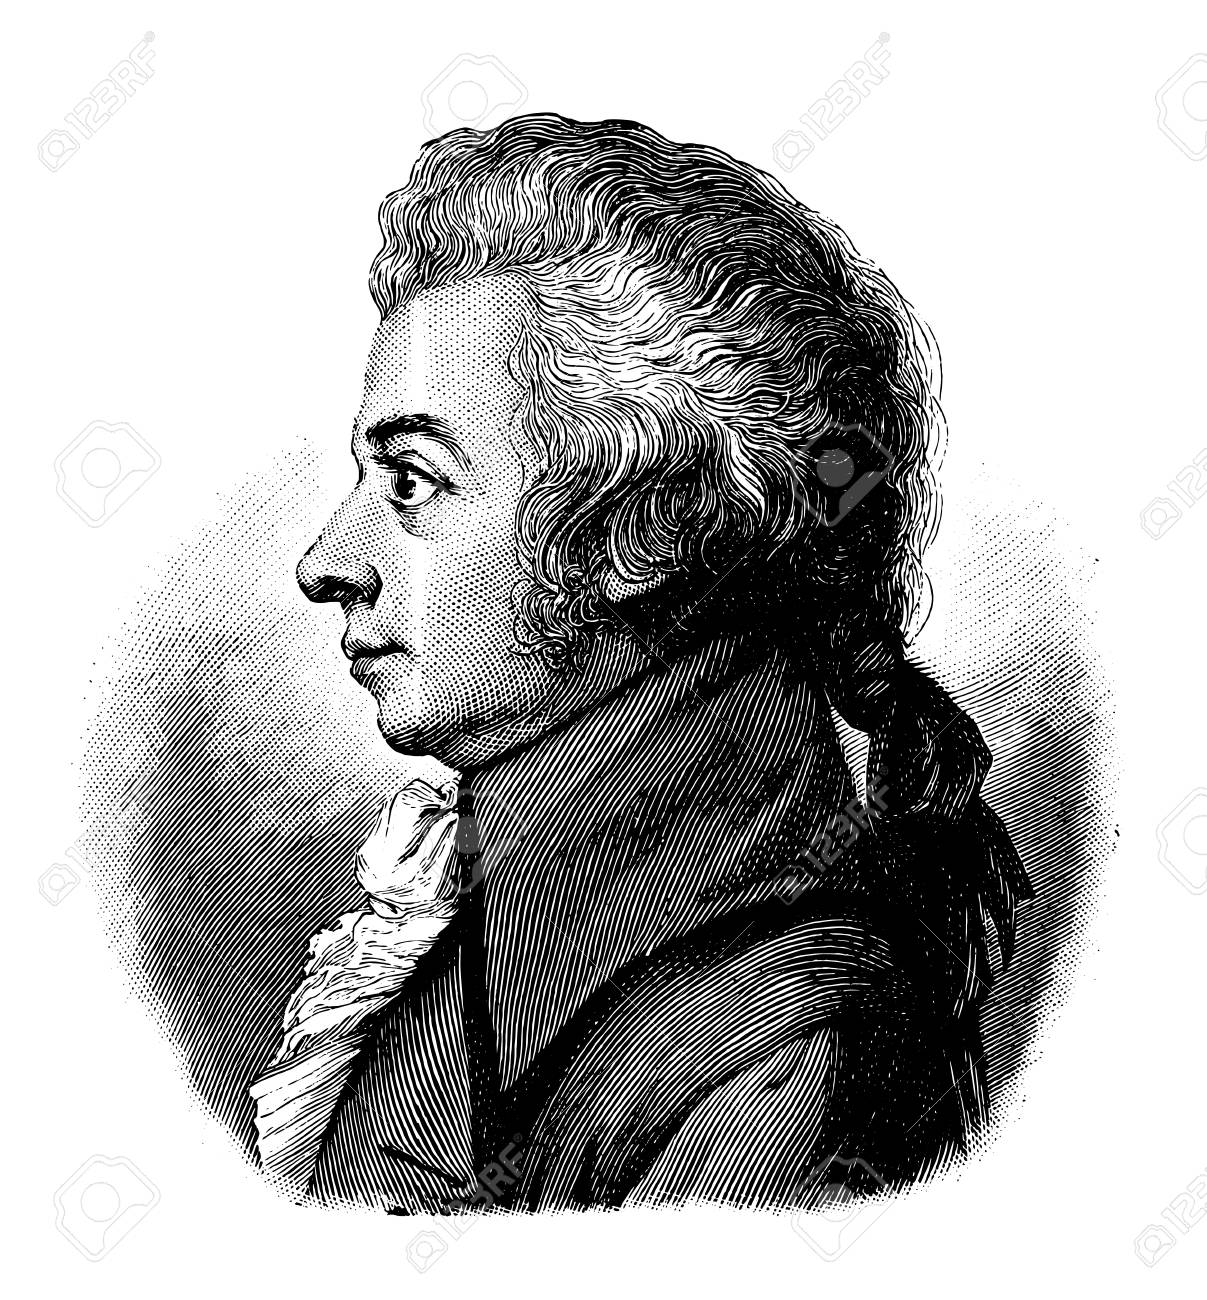 vectorized old engraving of Wolfgang Amadeus Mozart, engraving is from Meyers Lexicon published 1914 - 117162960